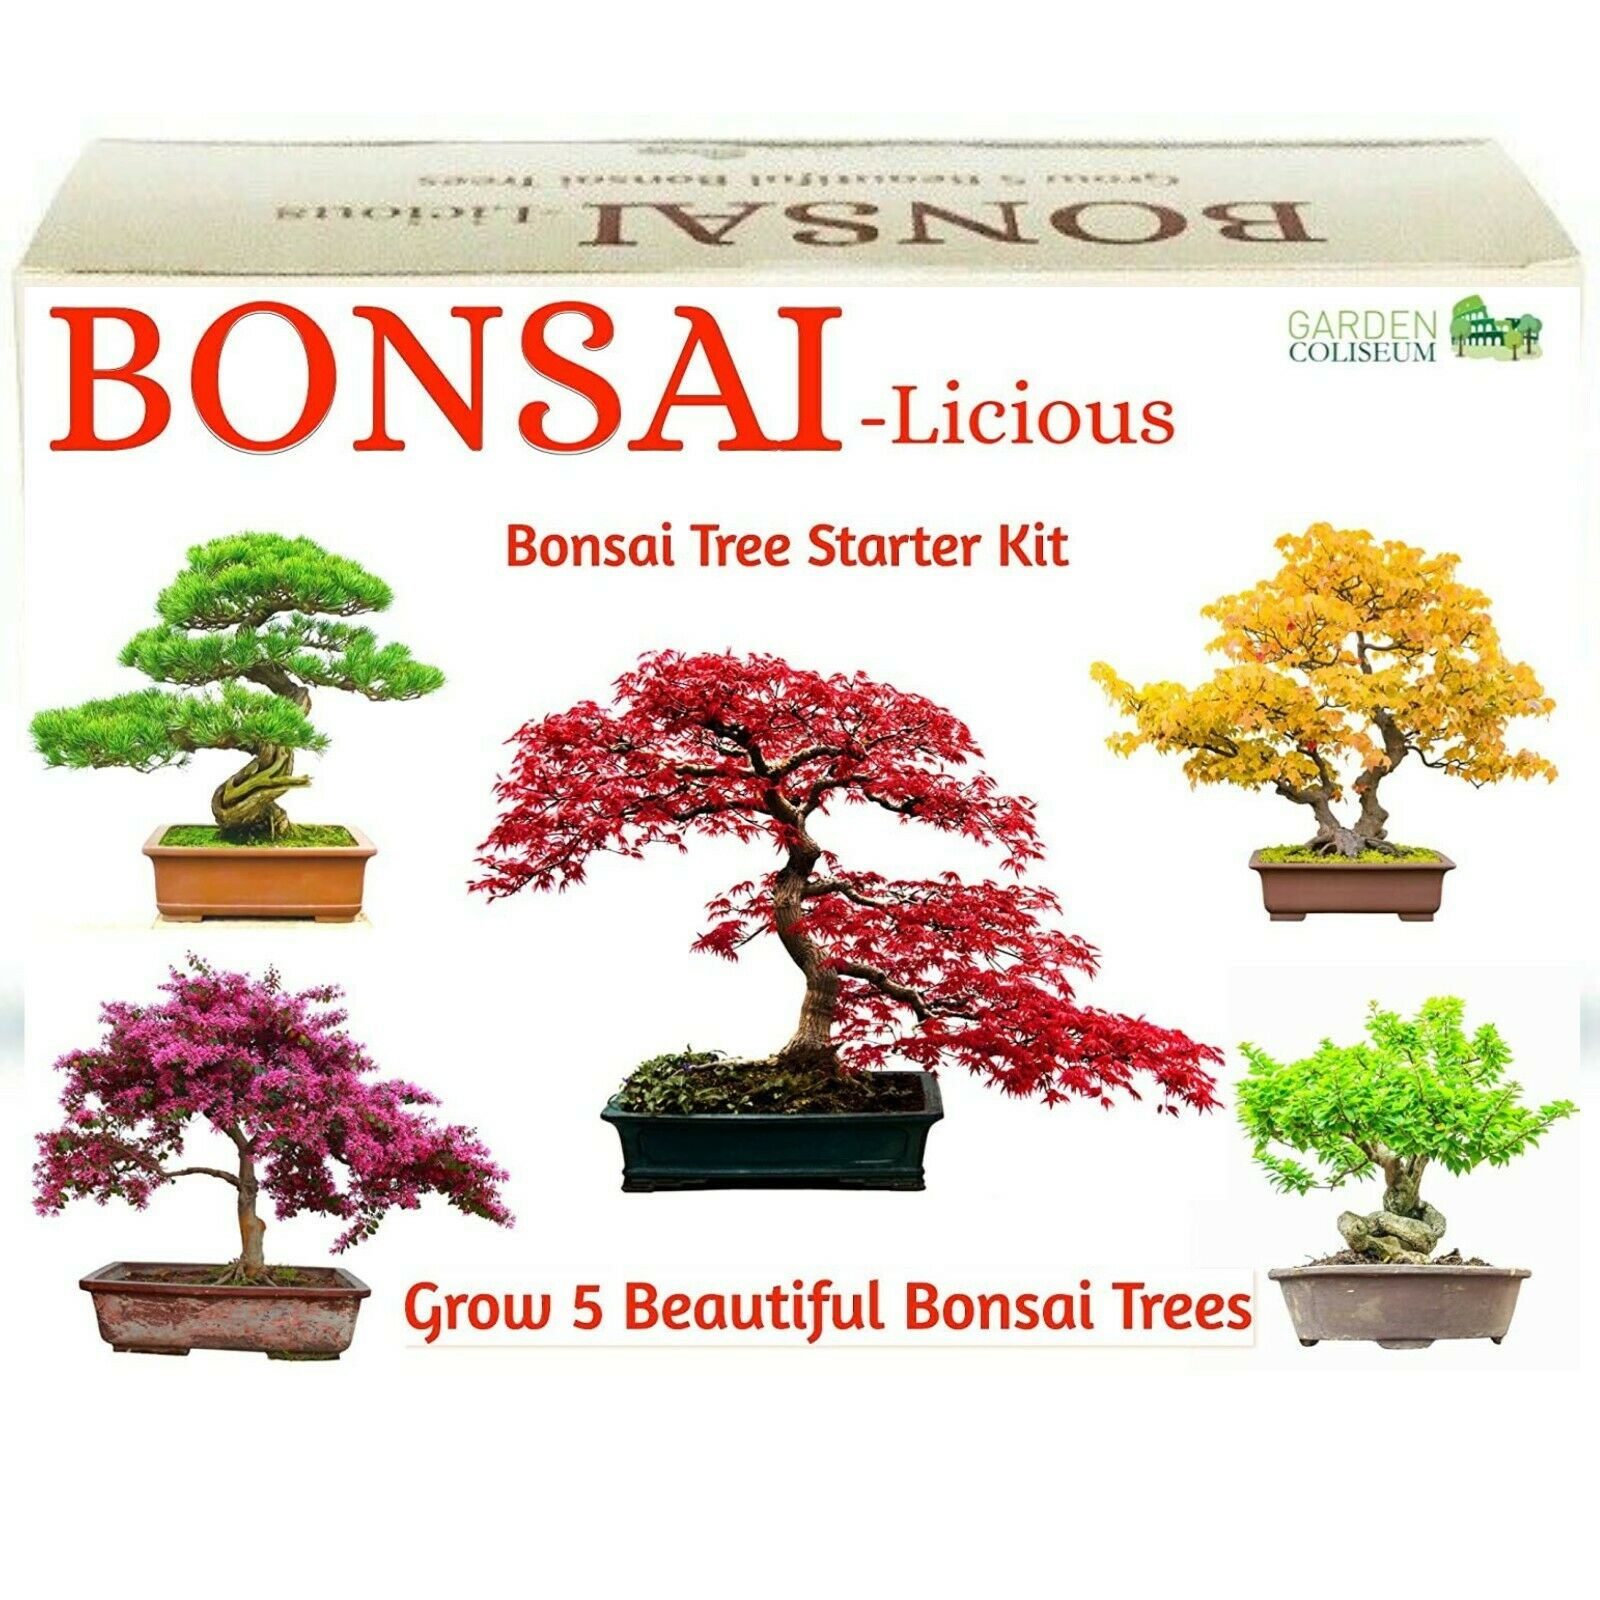 Japanese Black Pine Bonsai Tree Growing Kit Grow Bansai Trees From Seeds Gift For Sale Online Ebay